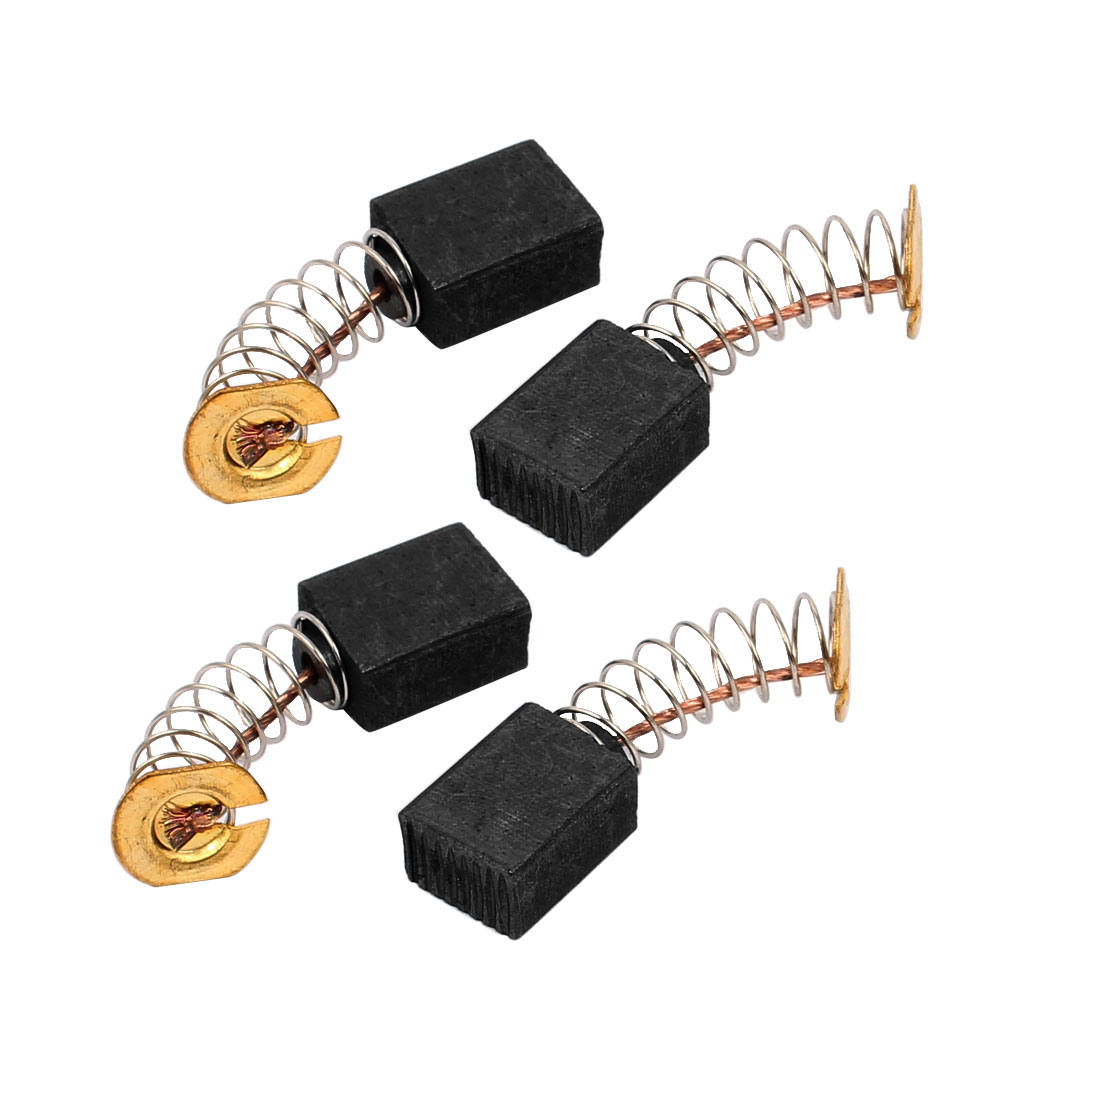 2 Pairs 12x9x6mm Carbon Brushes Power Tool for Electric Hammer Drill Motor